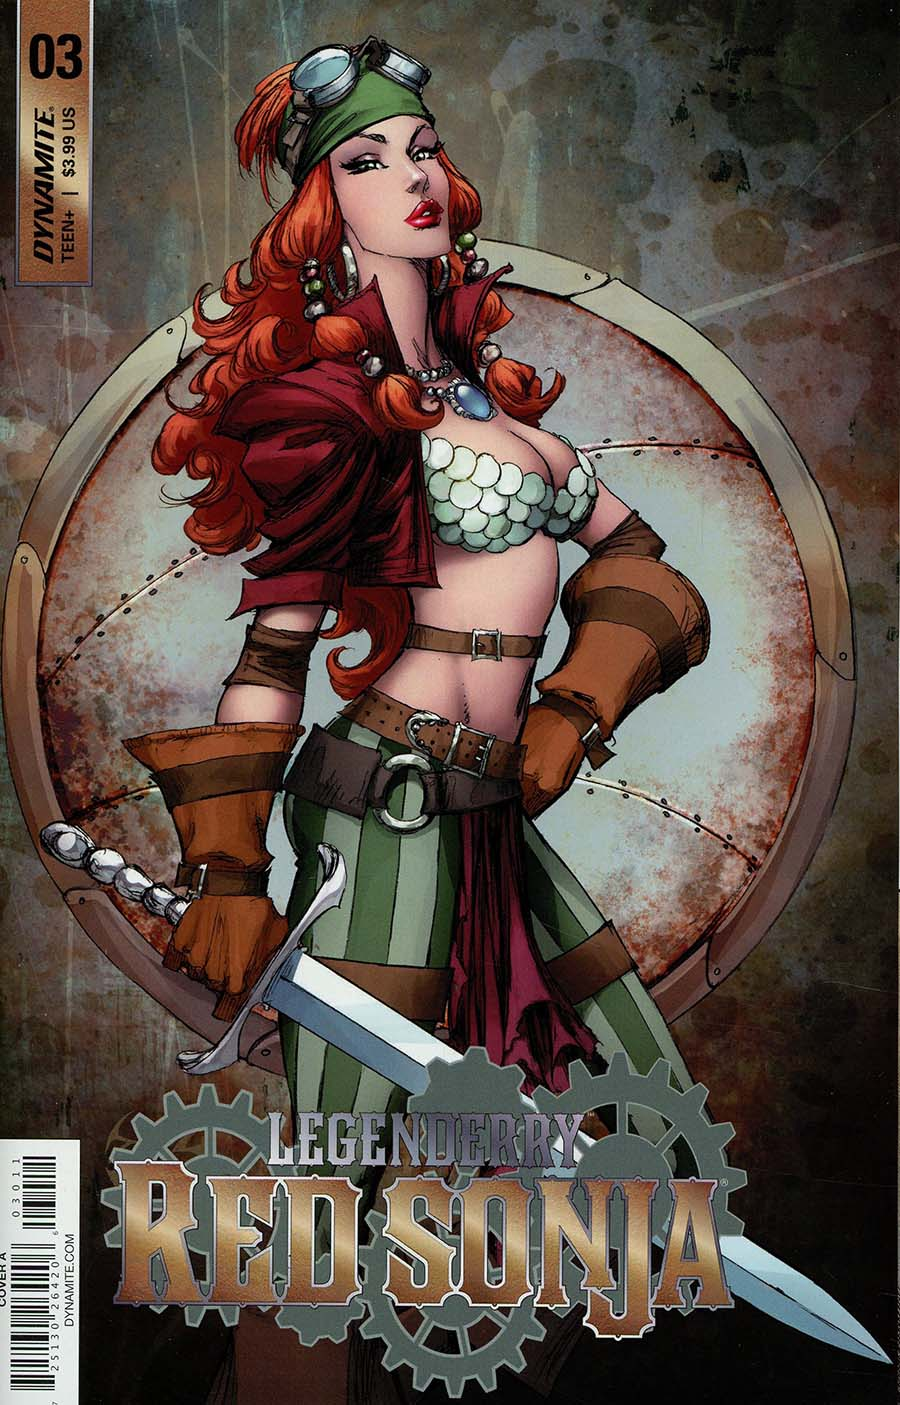 Legenderry Red Sonja Vol 2 #3 Cover A Regular Joe Benitez Cover